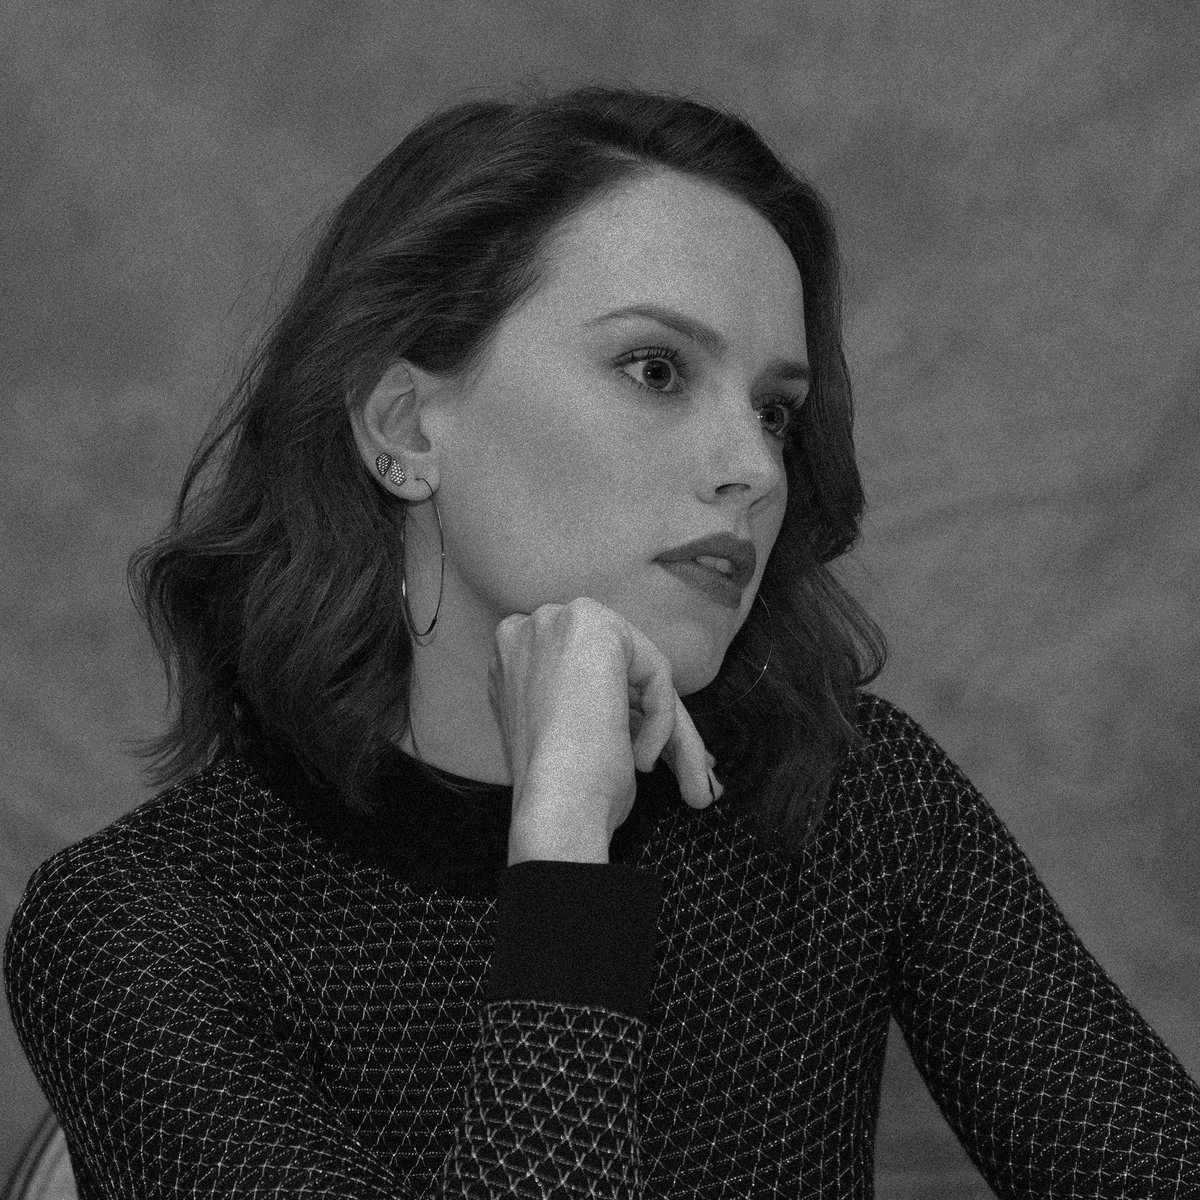 daisy ridley at the last jedi press conference, 2017. <br>http://pic.twitter.com/wmdfcRoOC3